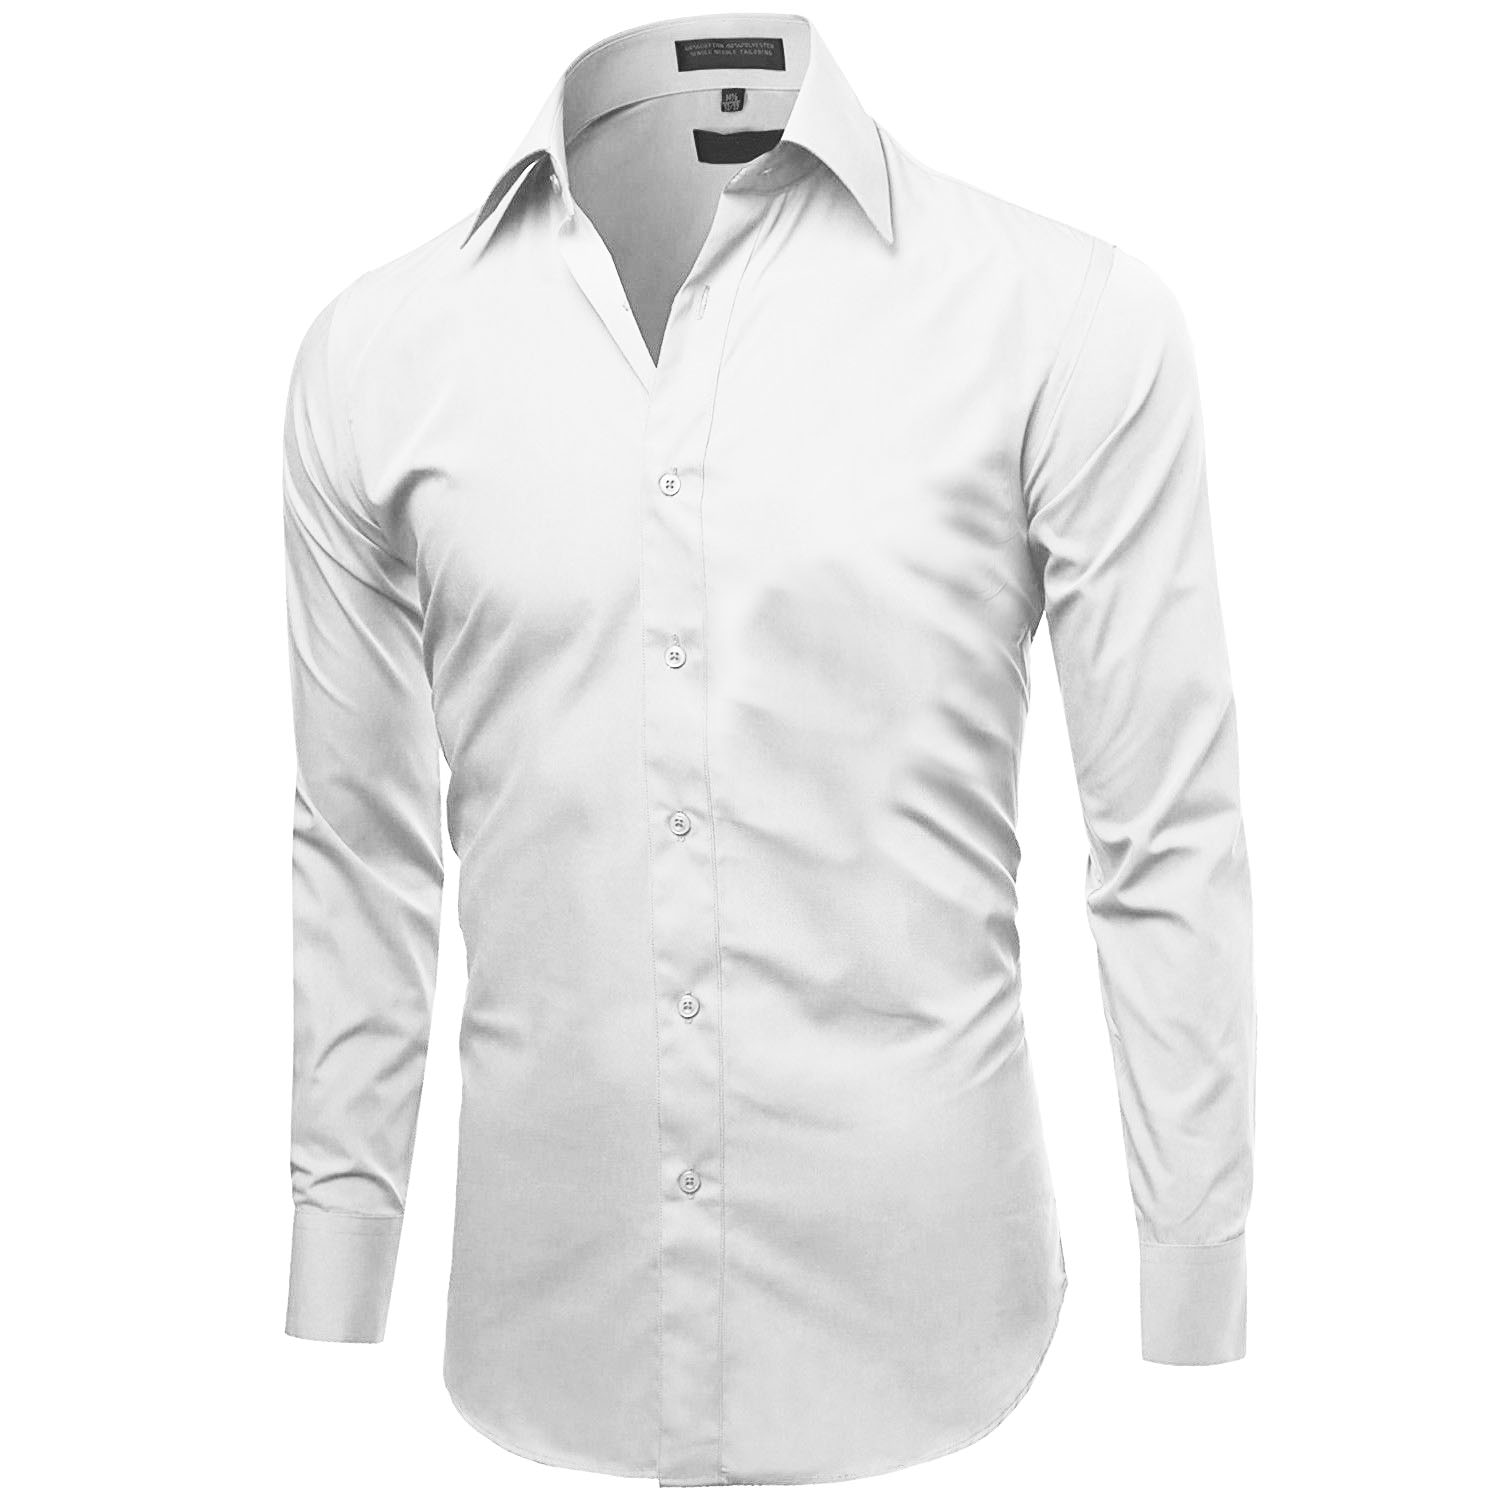 Omega-Italy-Men-039-s-Premium-Slim-Fit-Button-Up-Long-Sleeve-Solid-Color-Dress-Shirt thumbnail 48